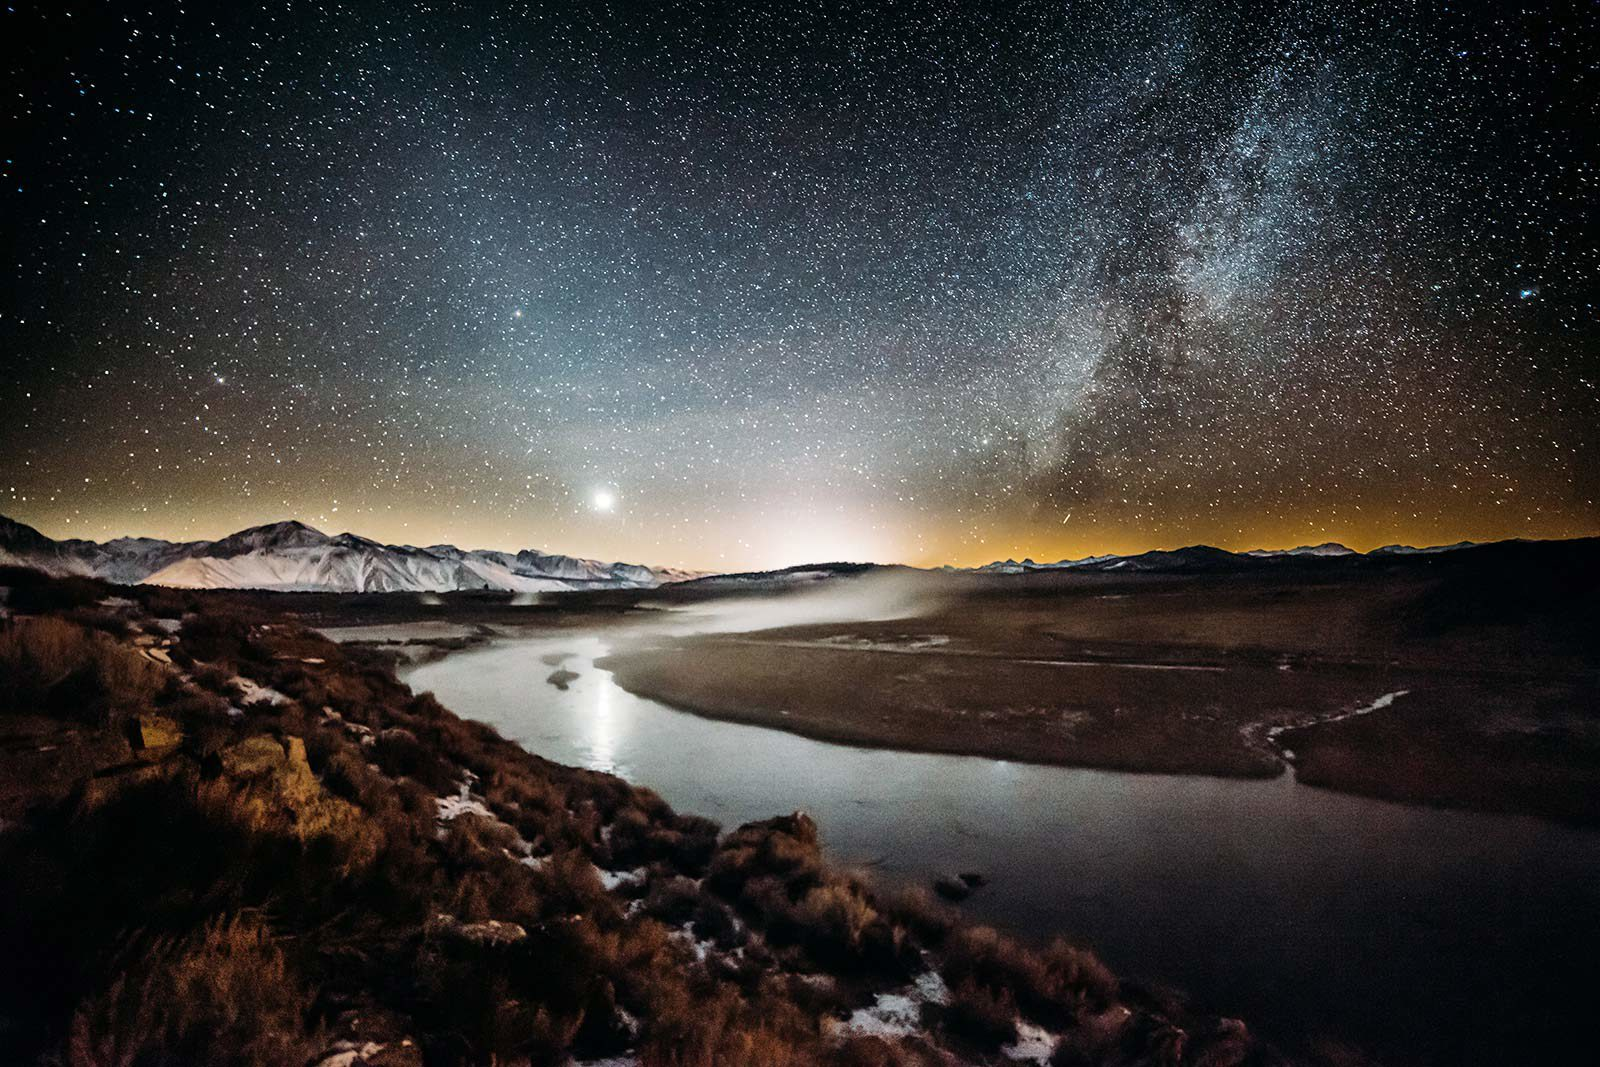 View of winding river and snowy mountains under starry sky.